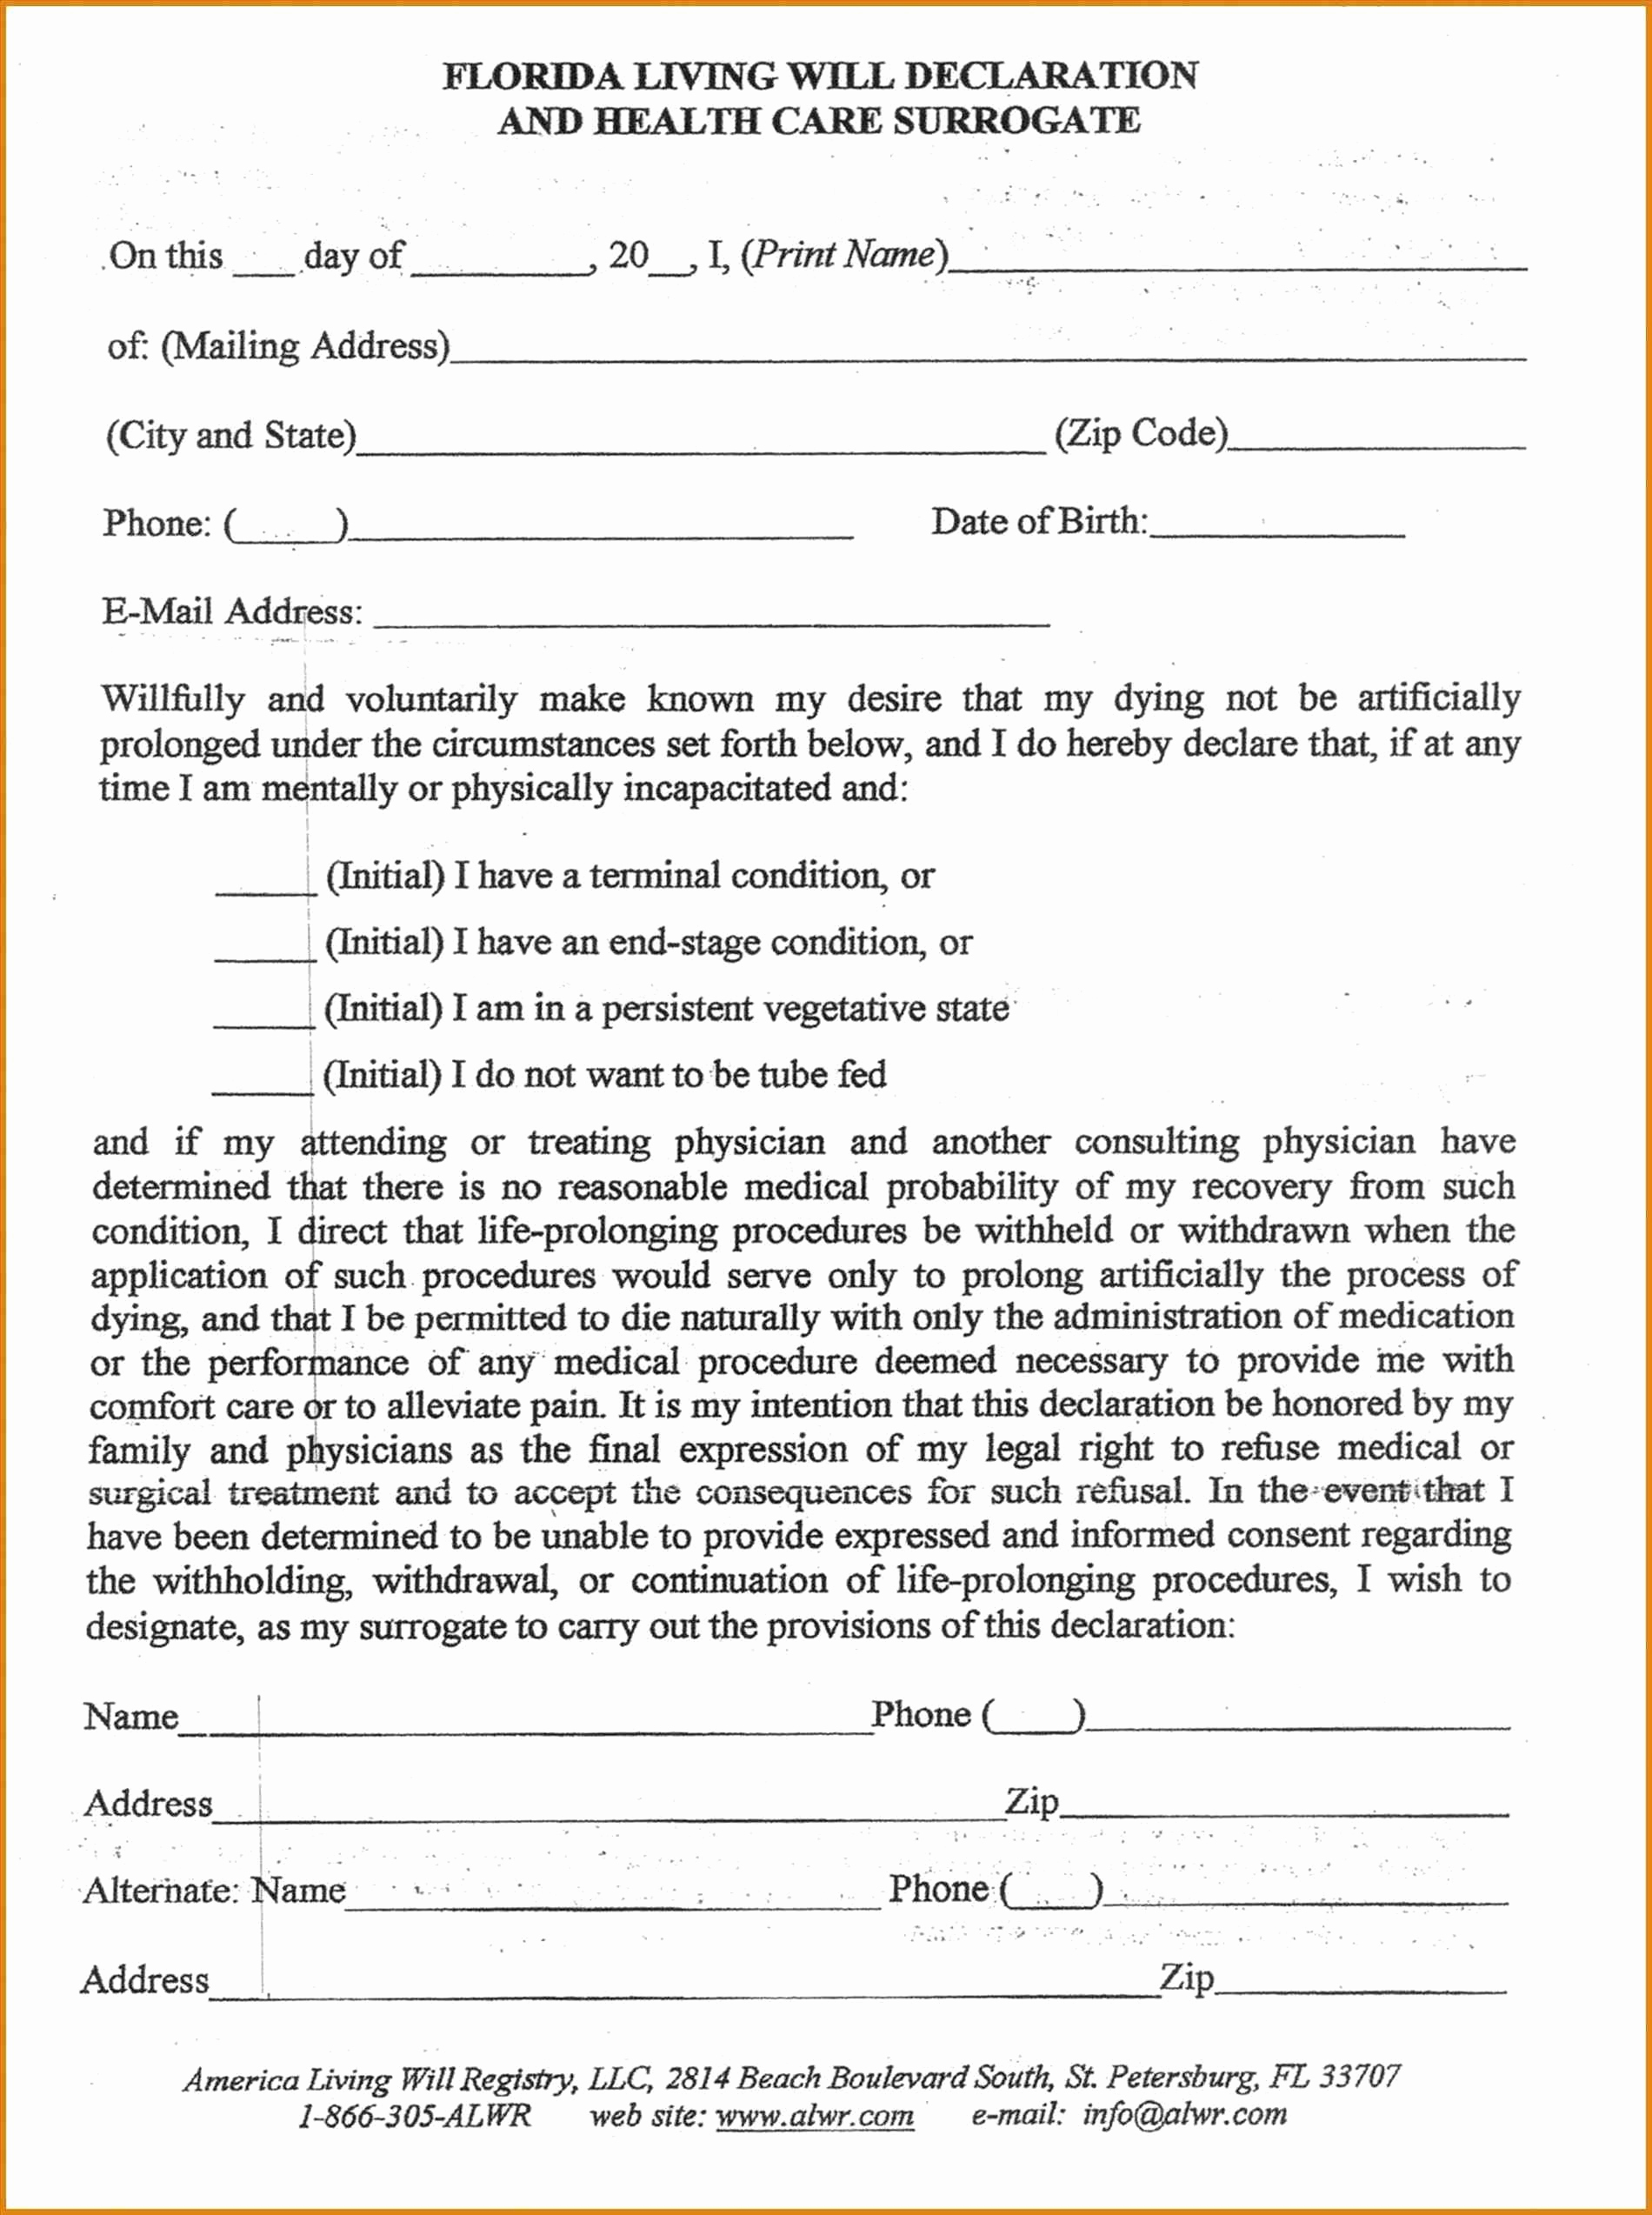 Florida Designation Of Health Care Surrogate Form Free Fresh Florida Health Care Power Attorney Forms Luxury For A Living Will